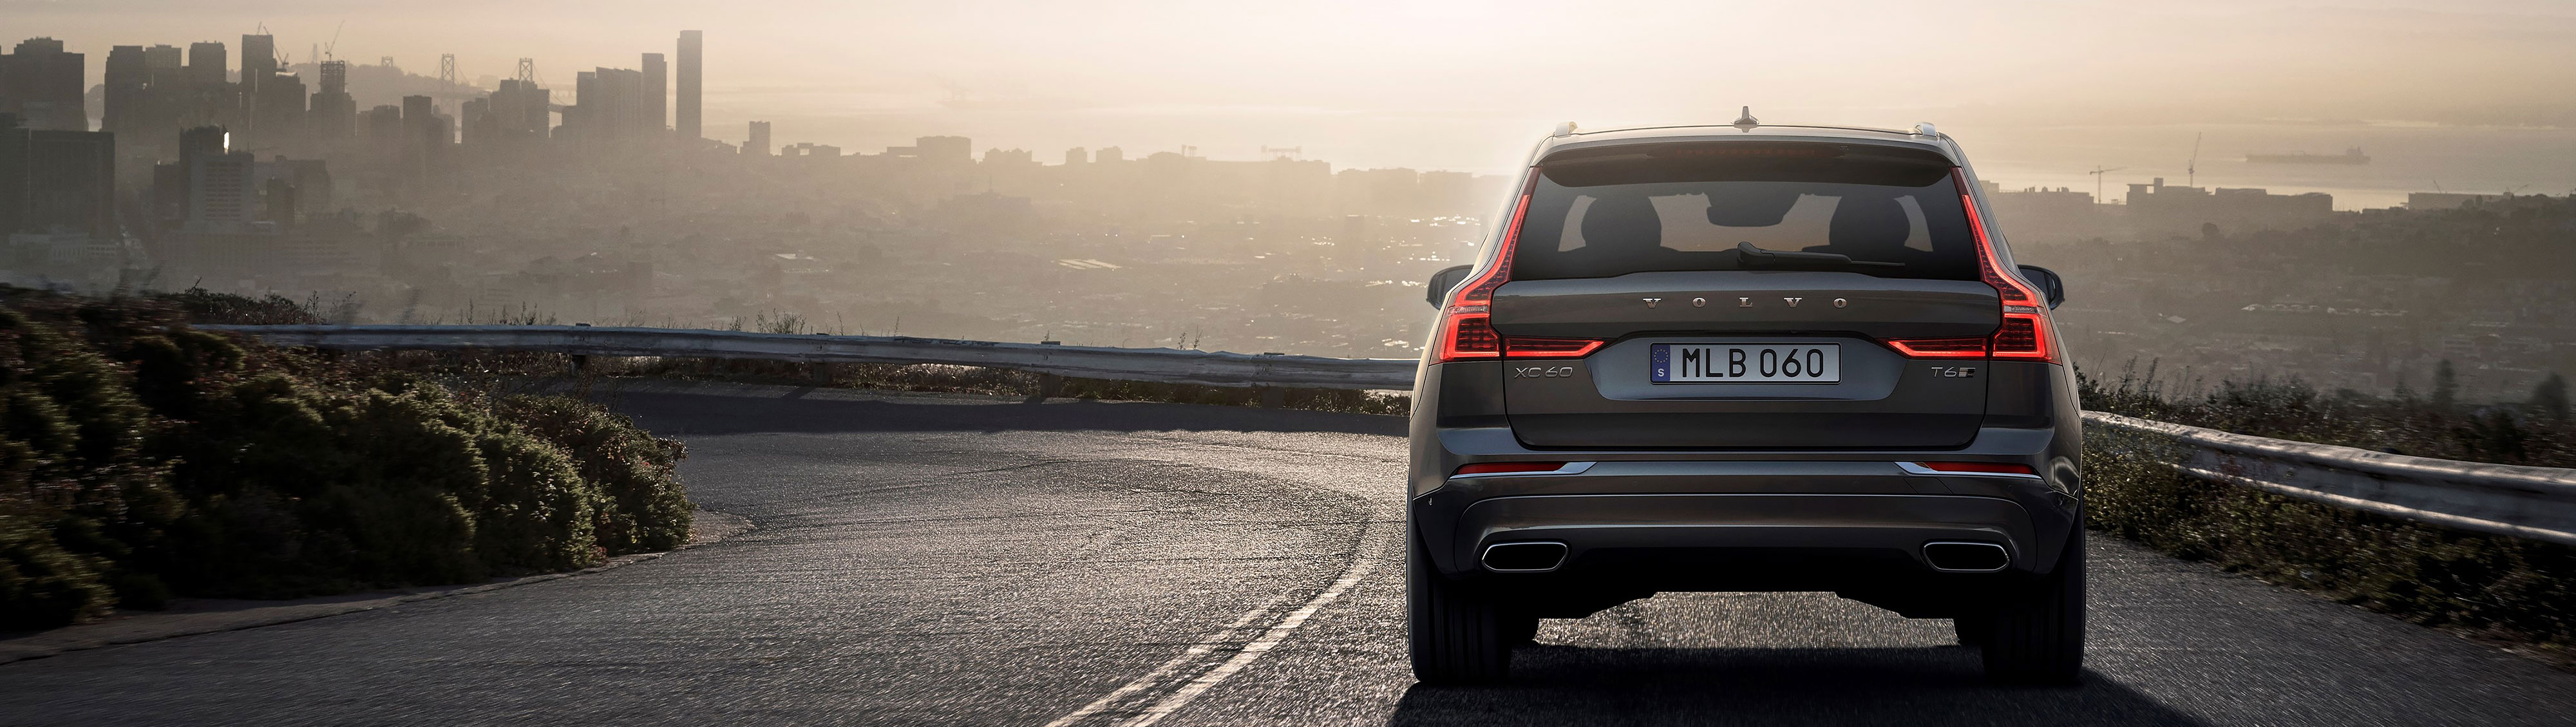 Photo of the back of the Volvo XC60 on a curving road